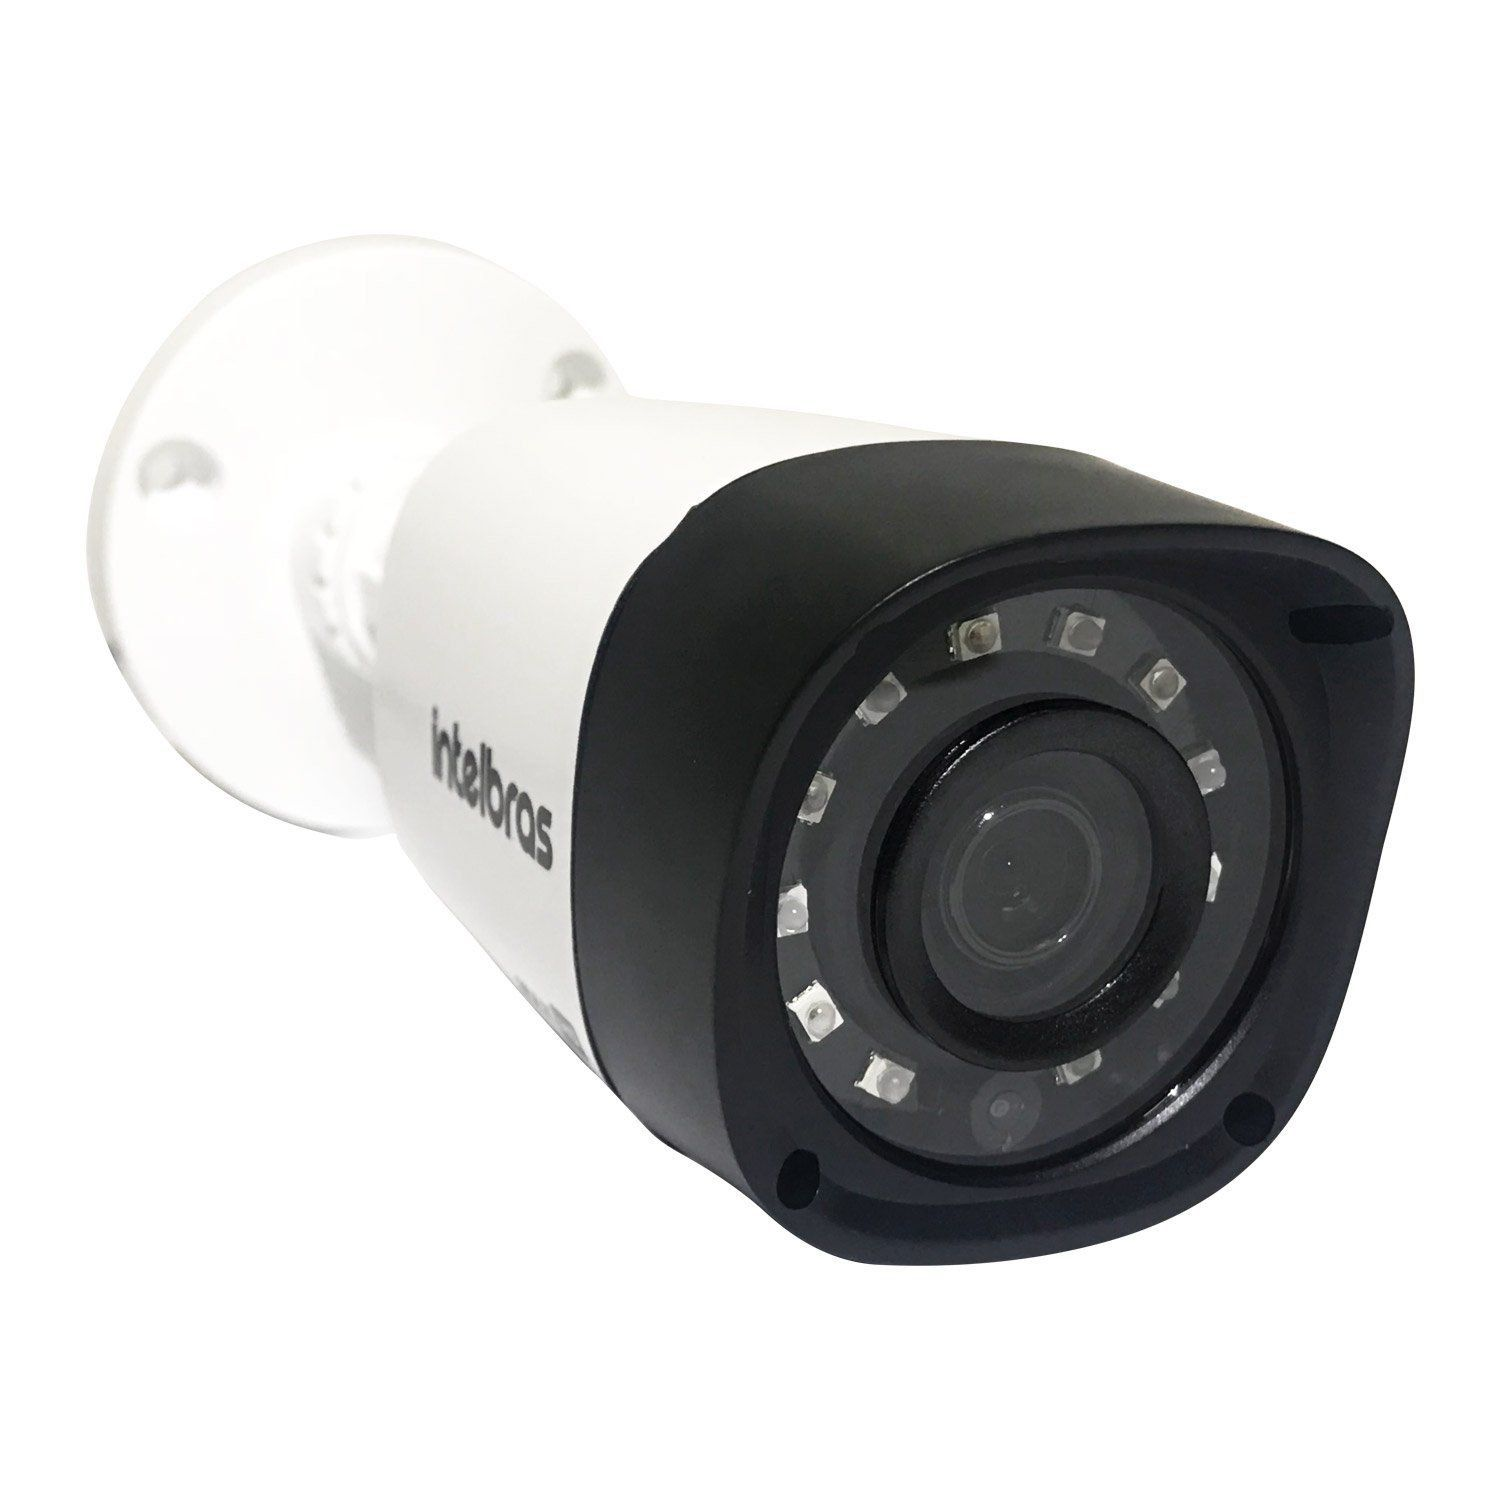 Câmera Intelbras Bullet HD VHD 1120 B Multi HD G4 (1.0MP | 720p | 2.6mm | Plast)